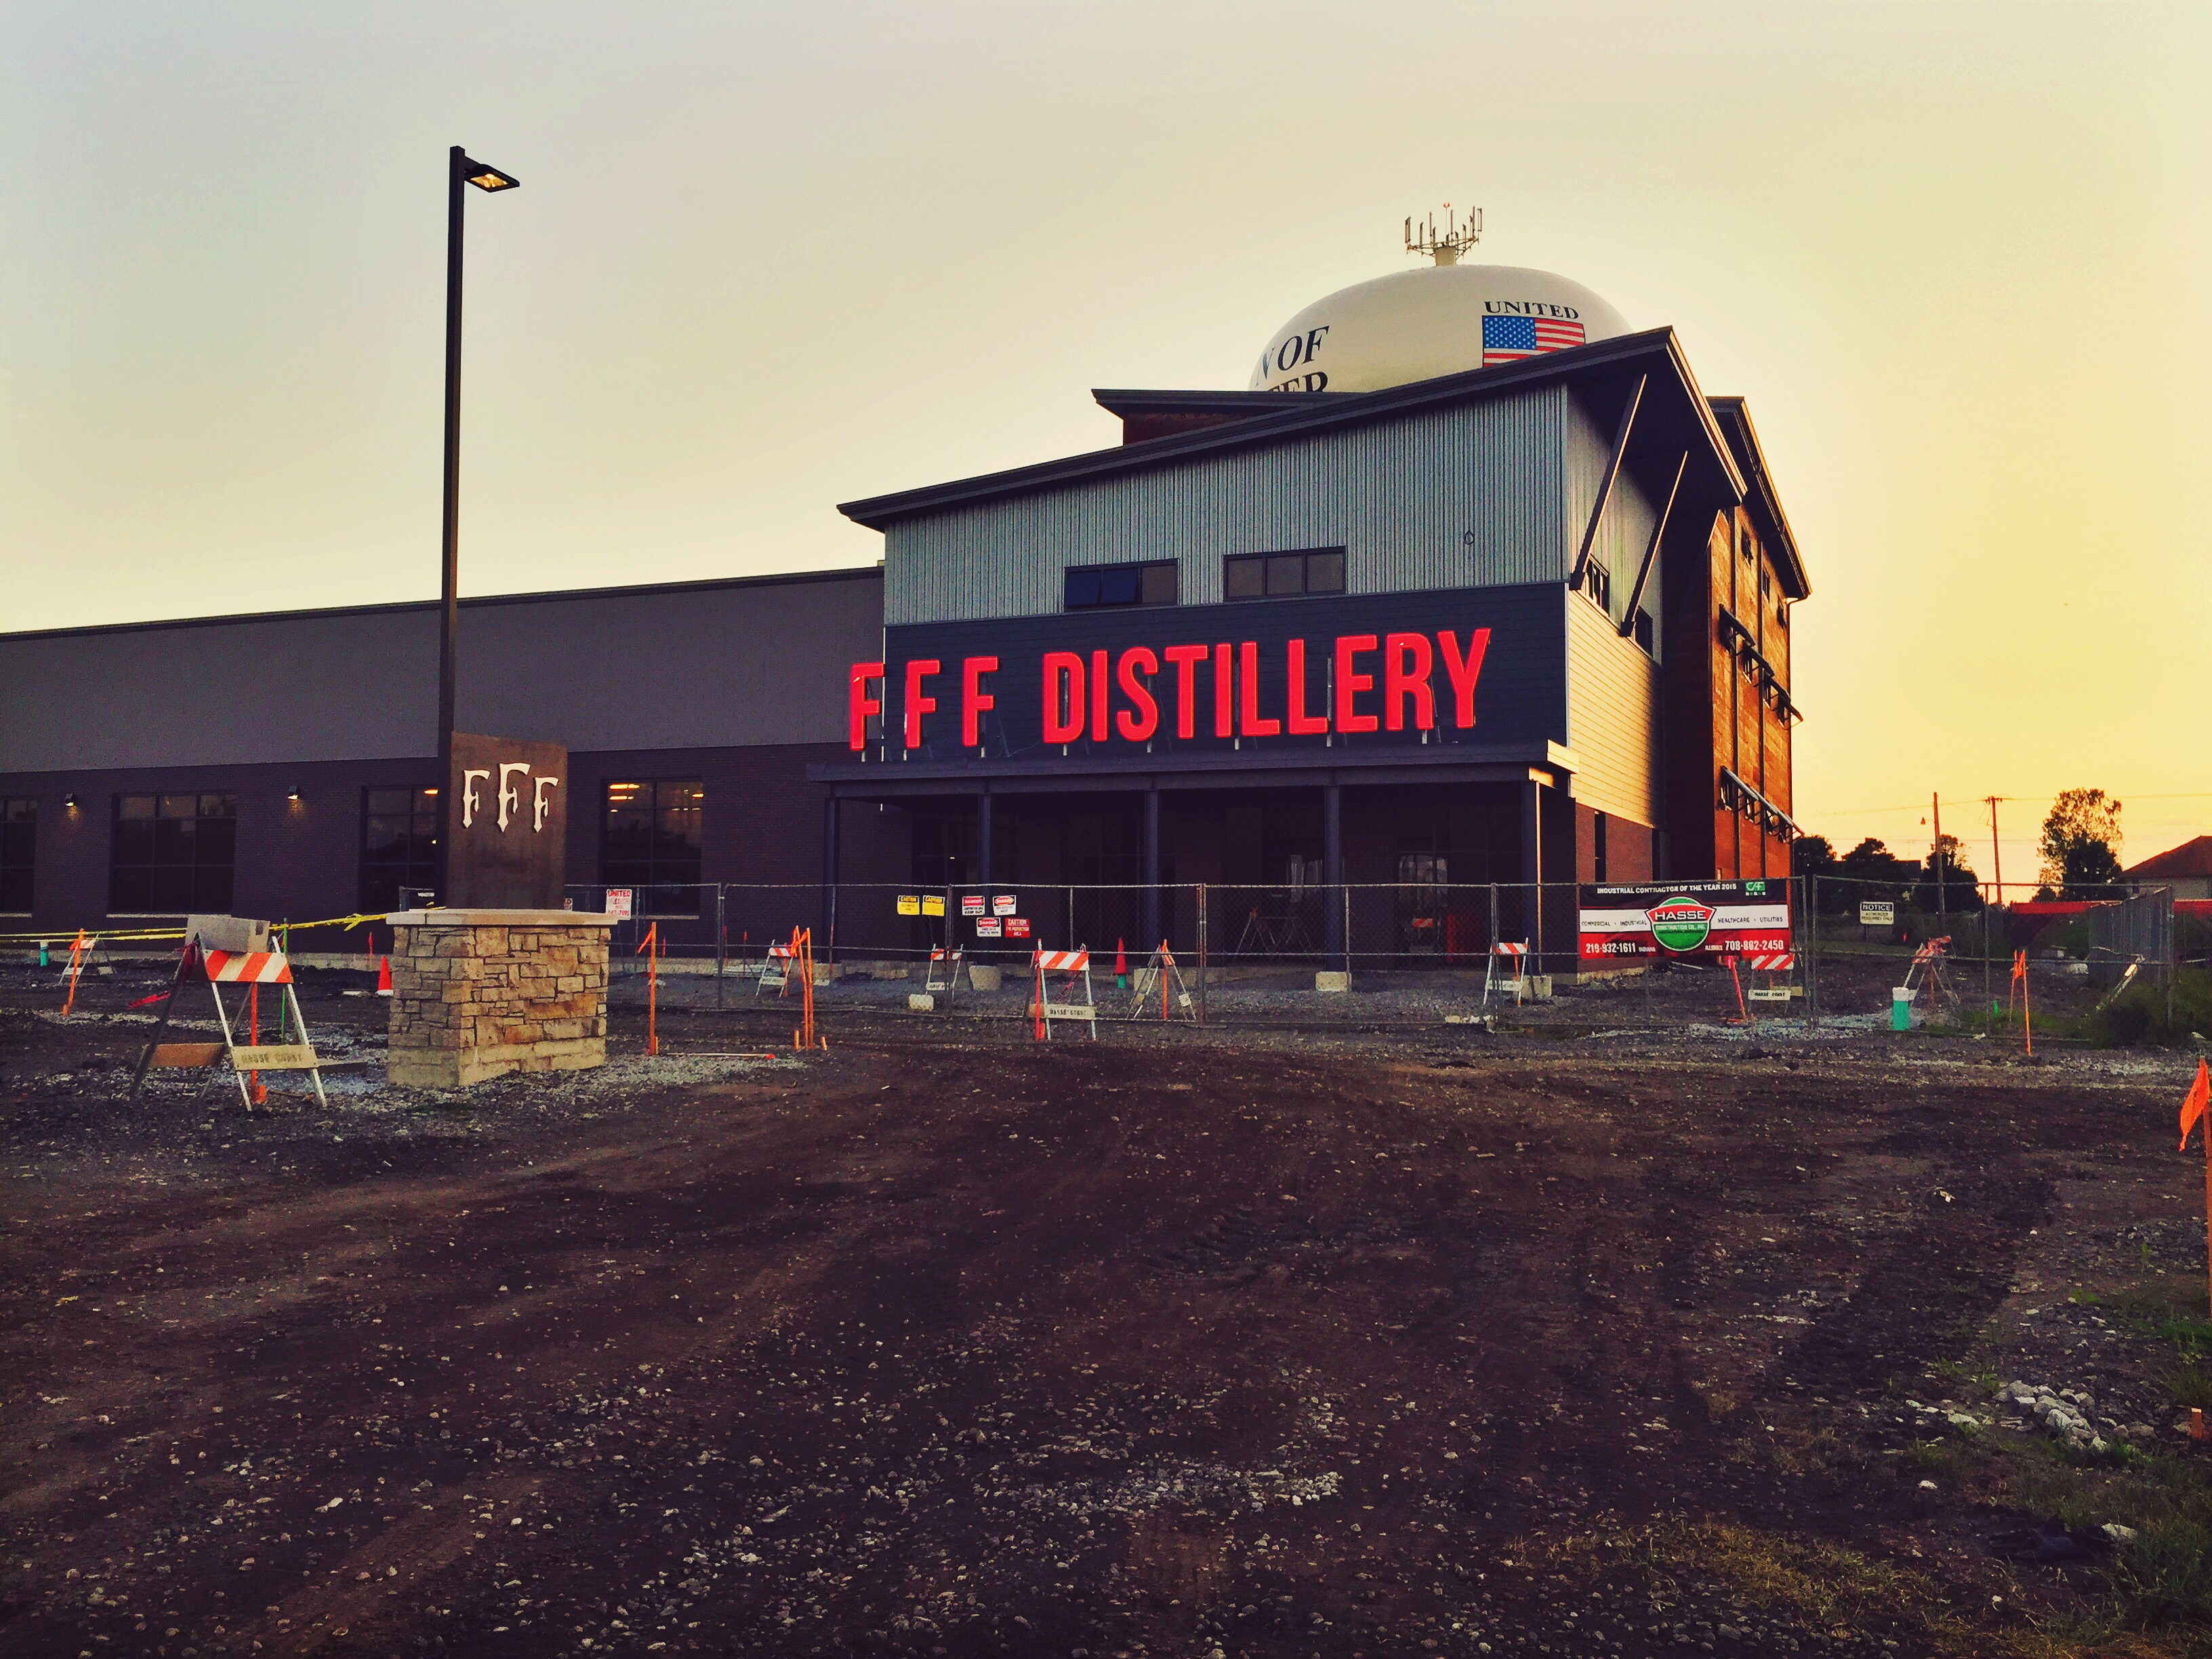 PHOTO: New Three Floyds Addition Nearing Completion